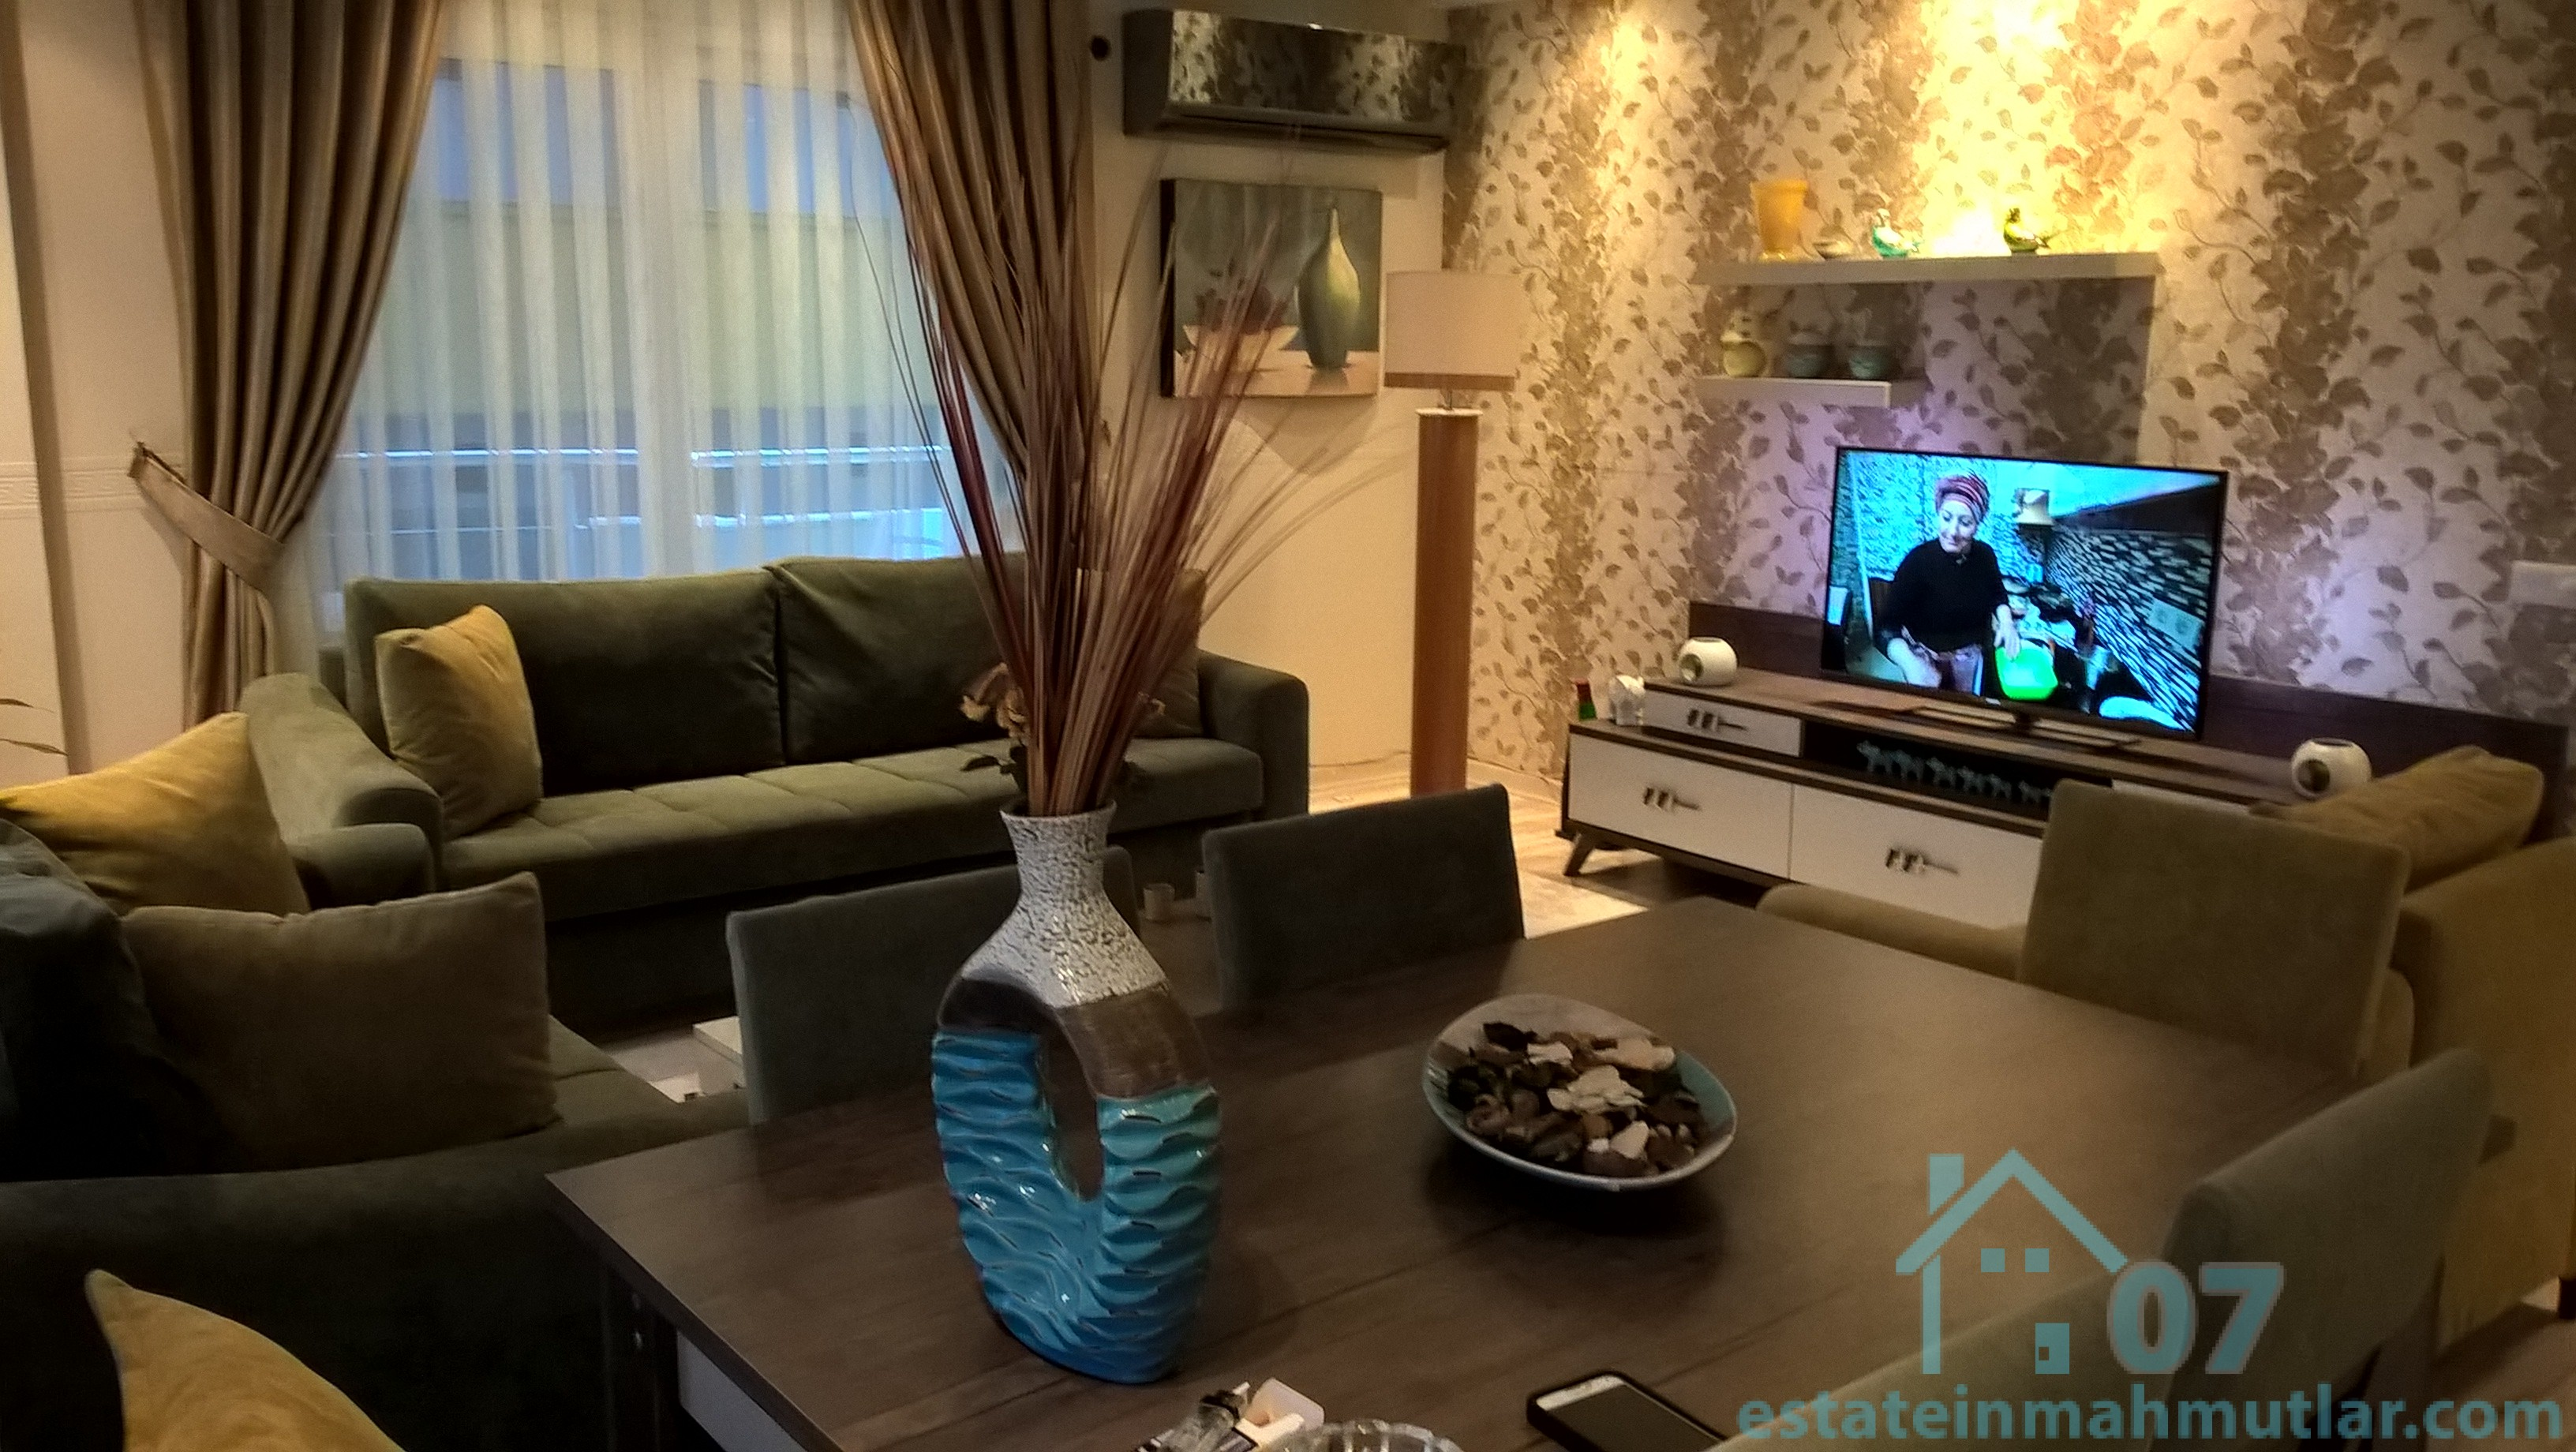 Luxurious Two Bedroom Apt Fully Furnished And Equipped With Modern  Appliances